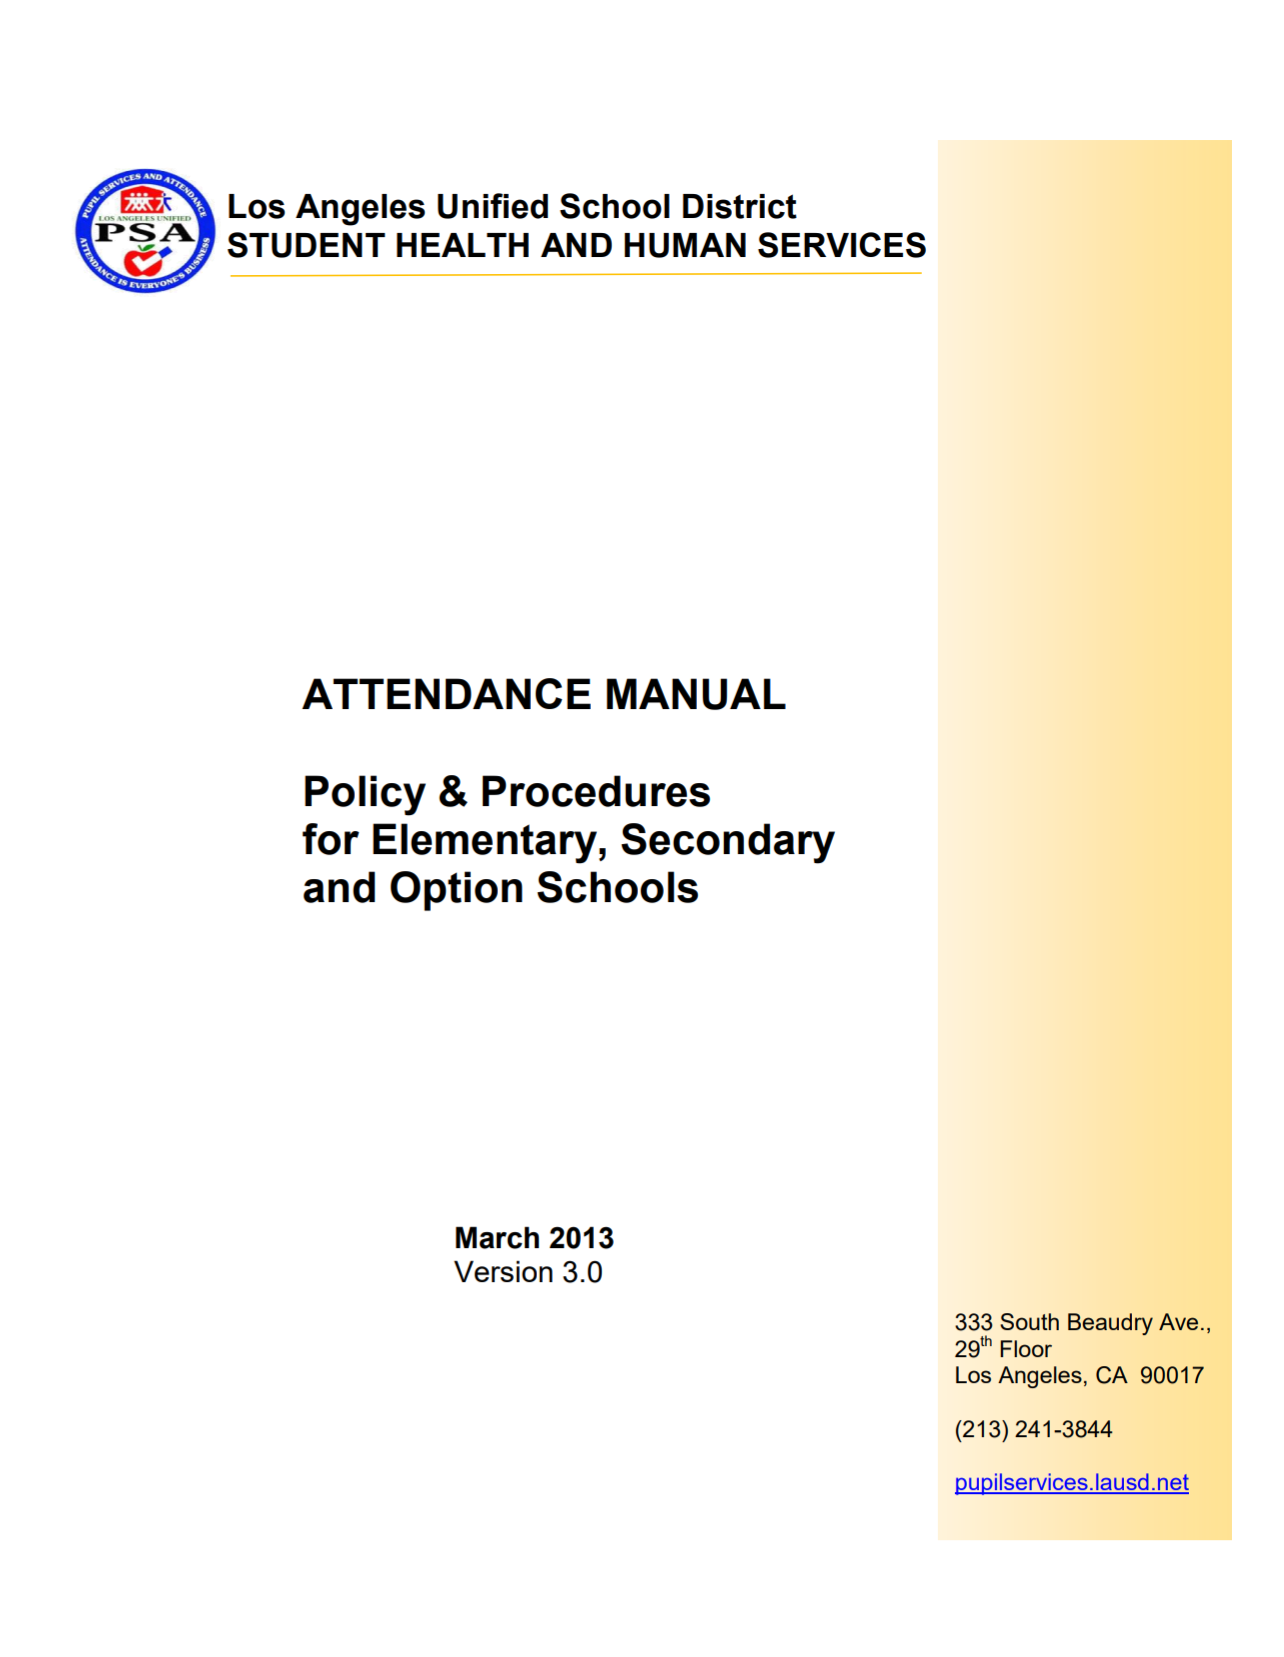 Attendance Works - State Policy - California - LA Schools - Attendance Manual